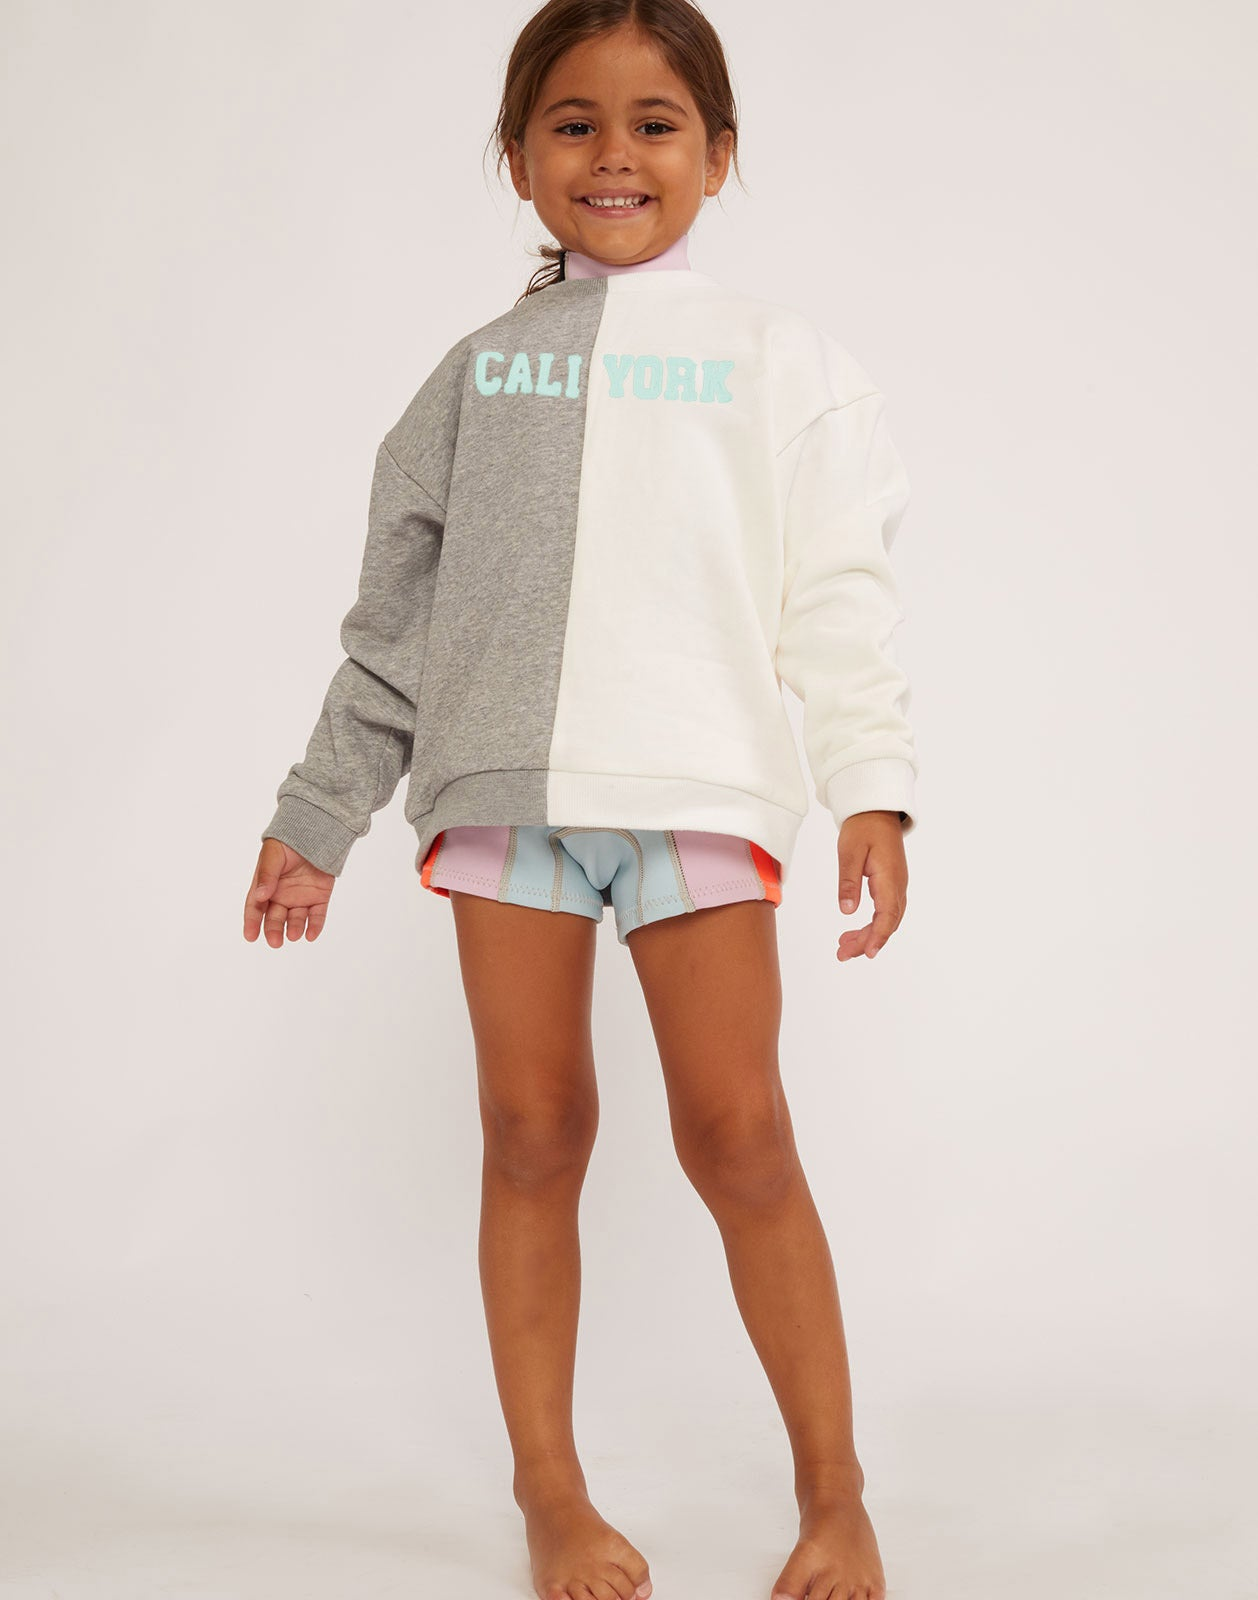 Kid's CaliYork Sweatshirt in grey and mint.